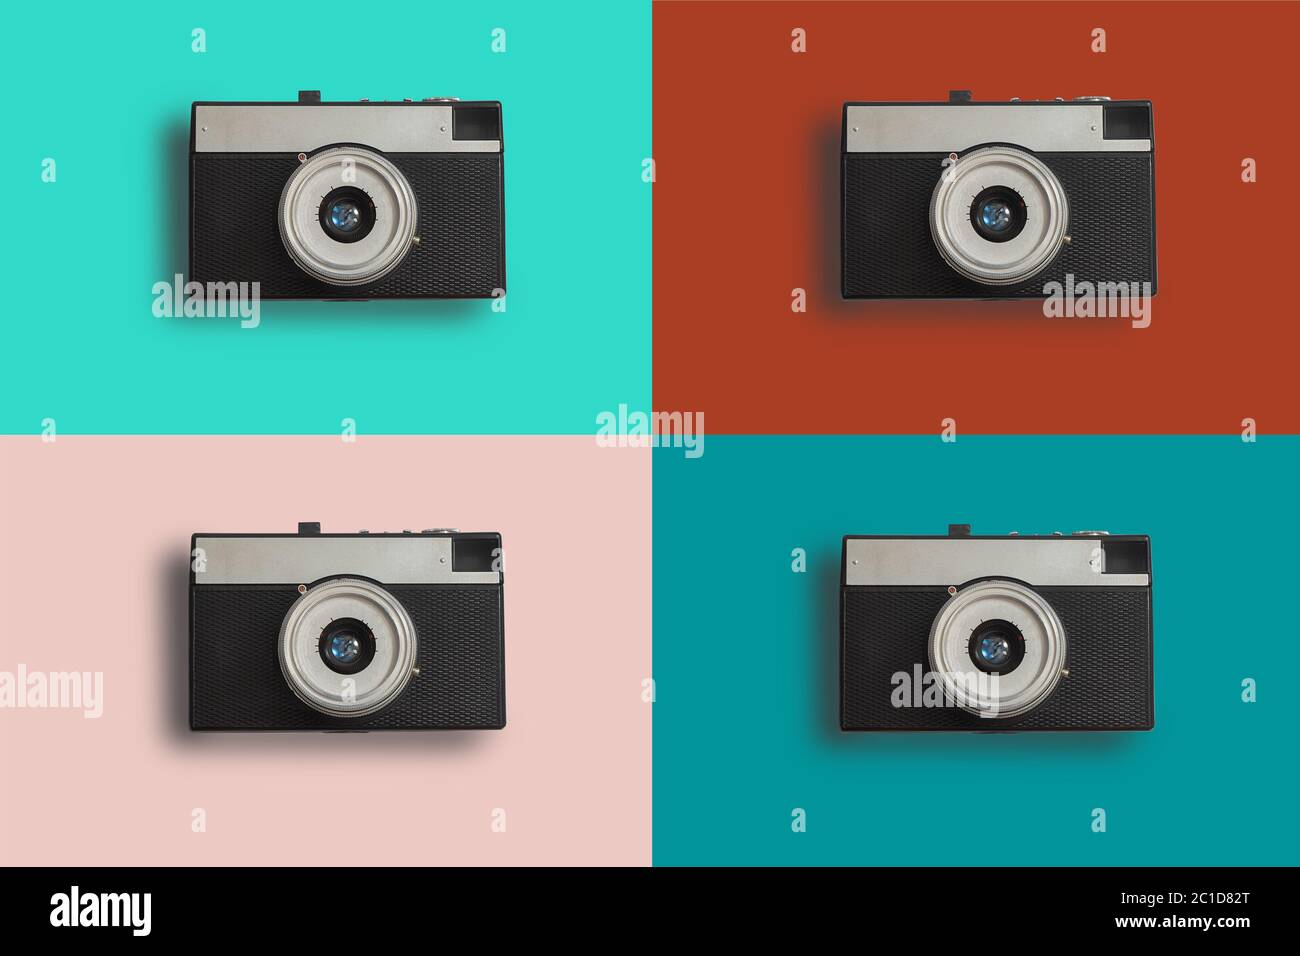 Colorful collage with retro vintage photo cameras Stock Photo